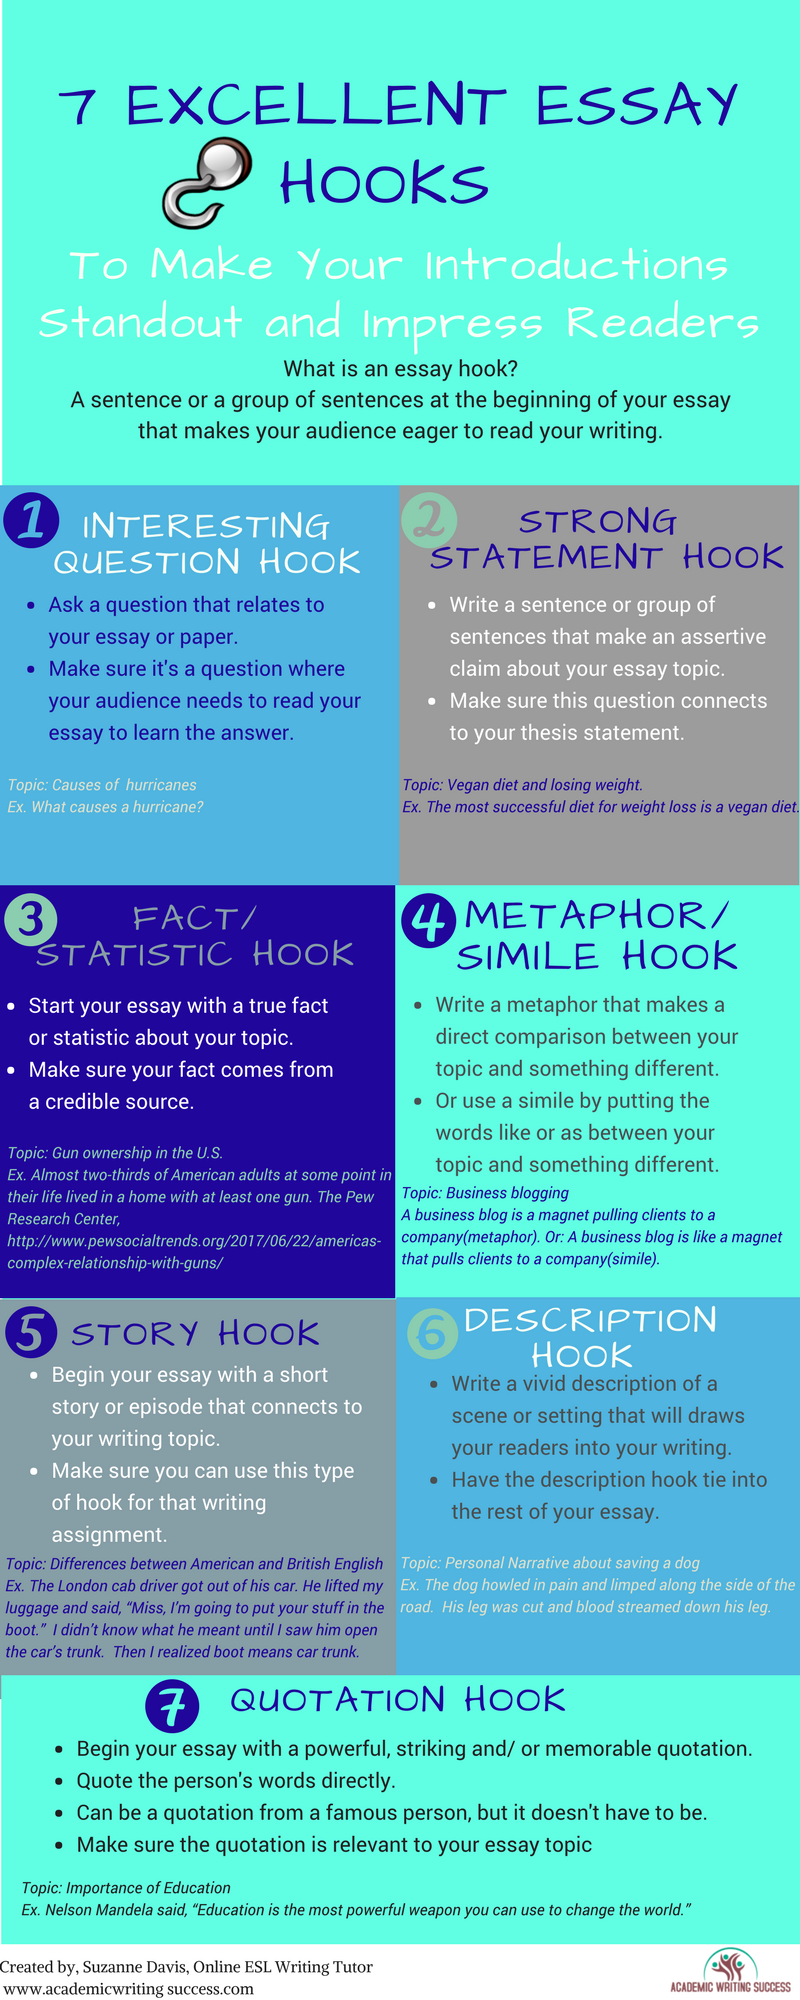 7 Types of Essay Hooks